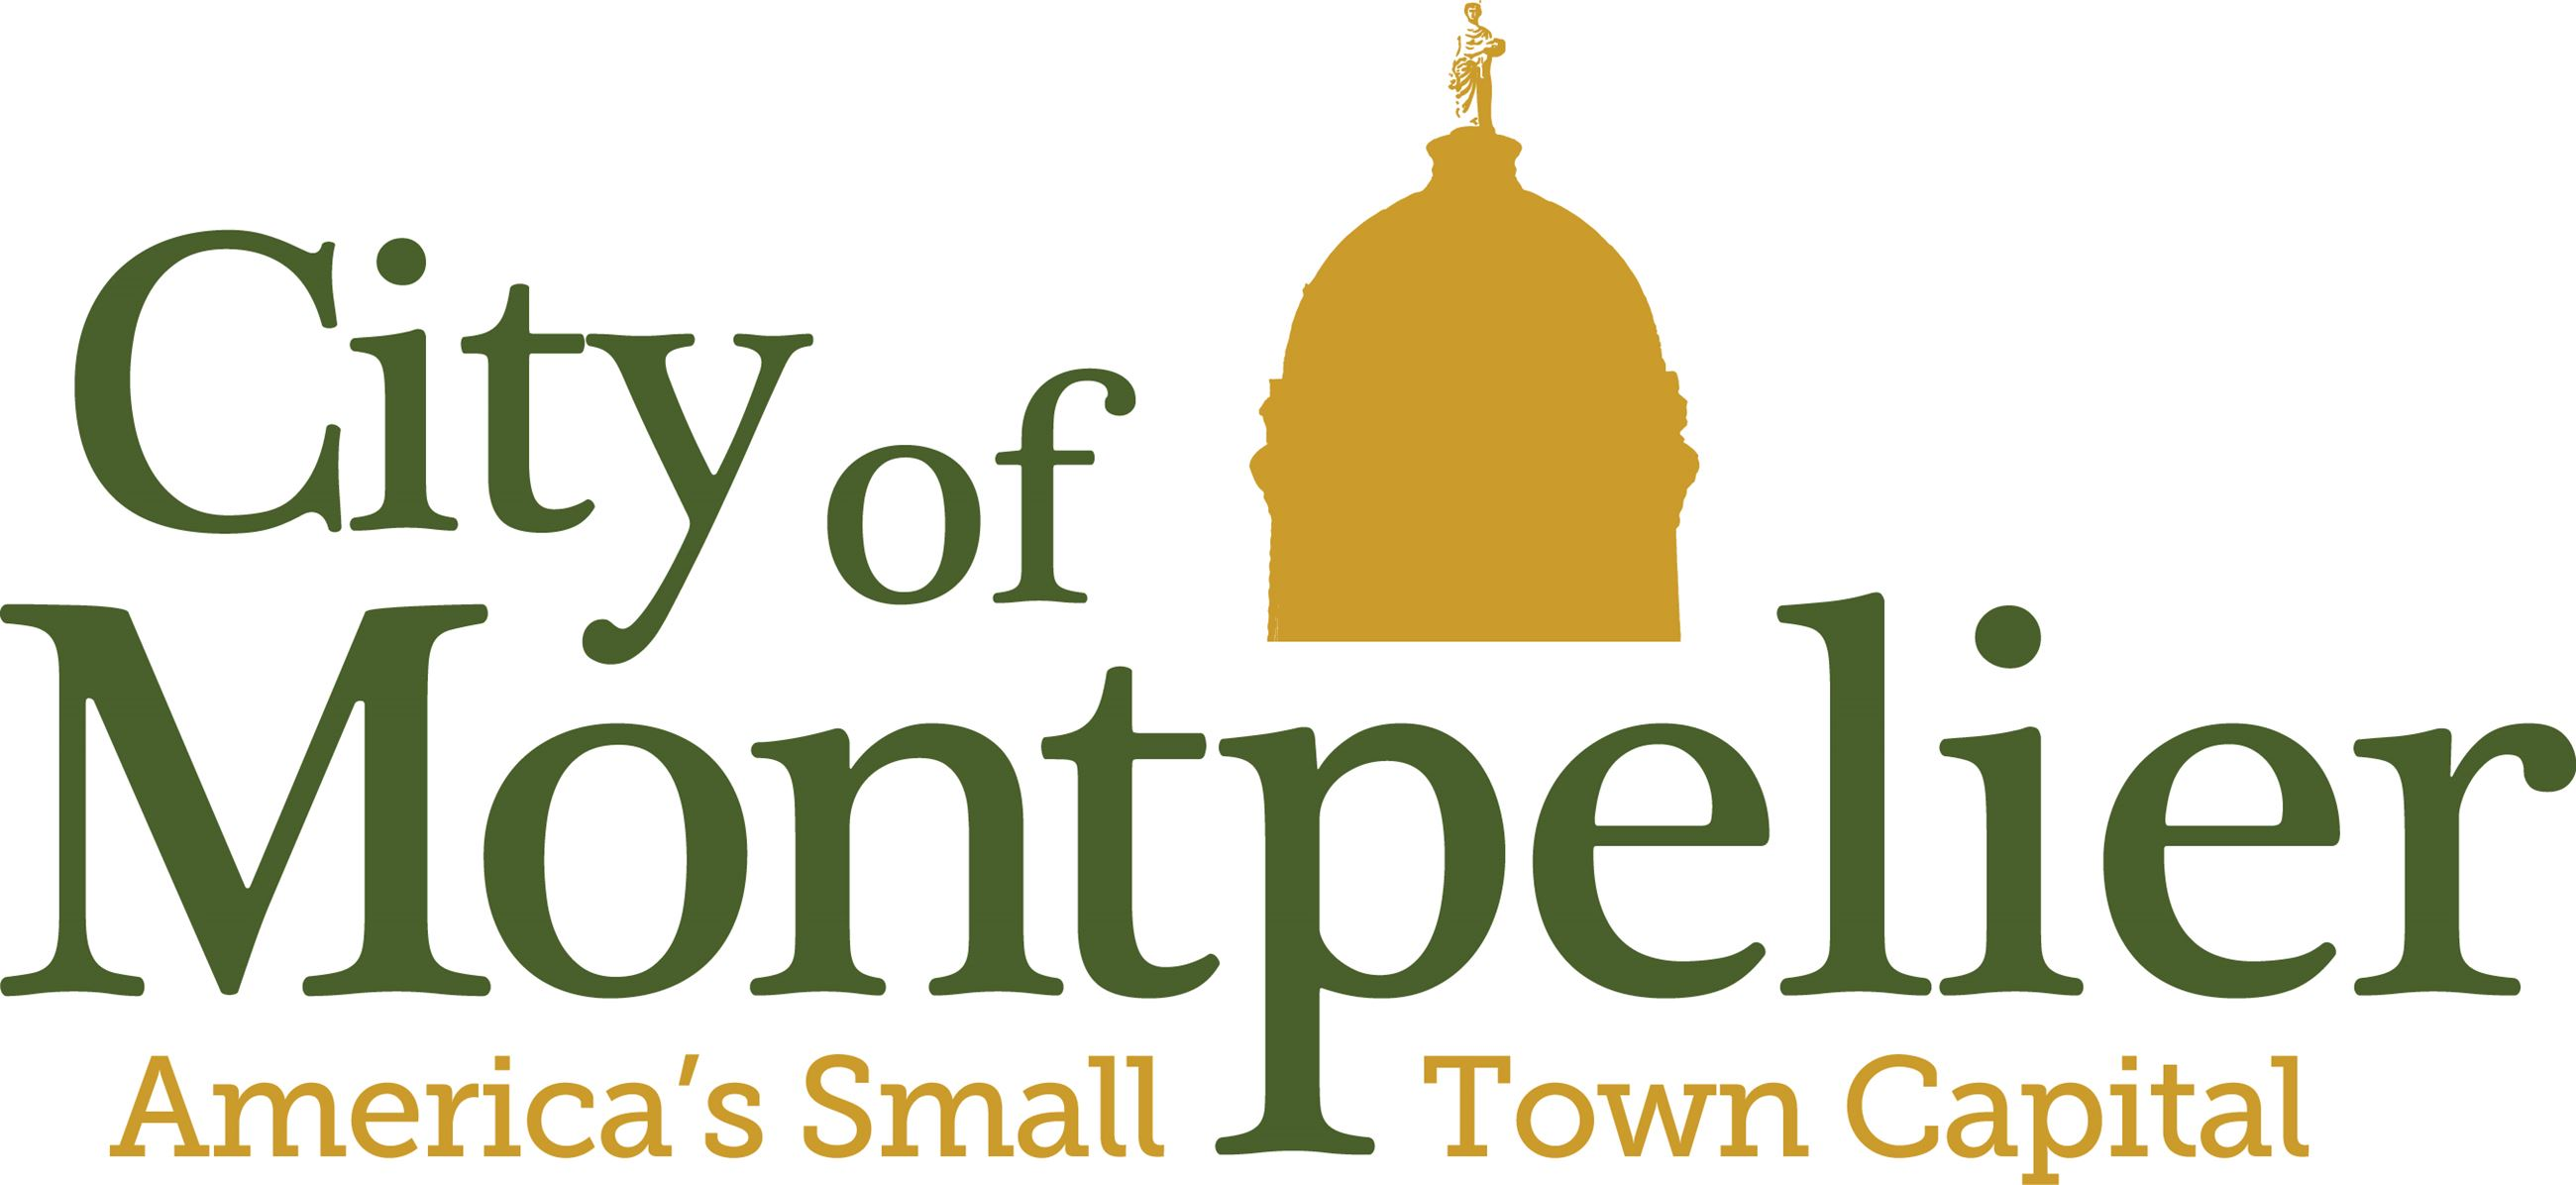 City Logo - Small Town Capital